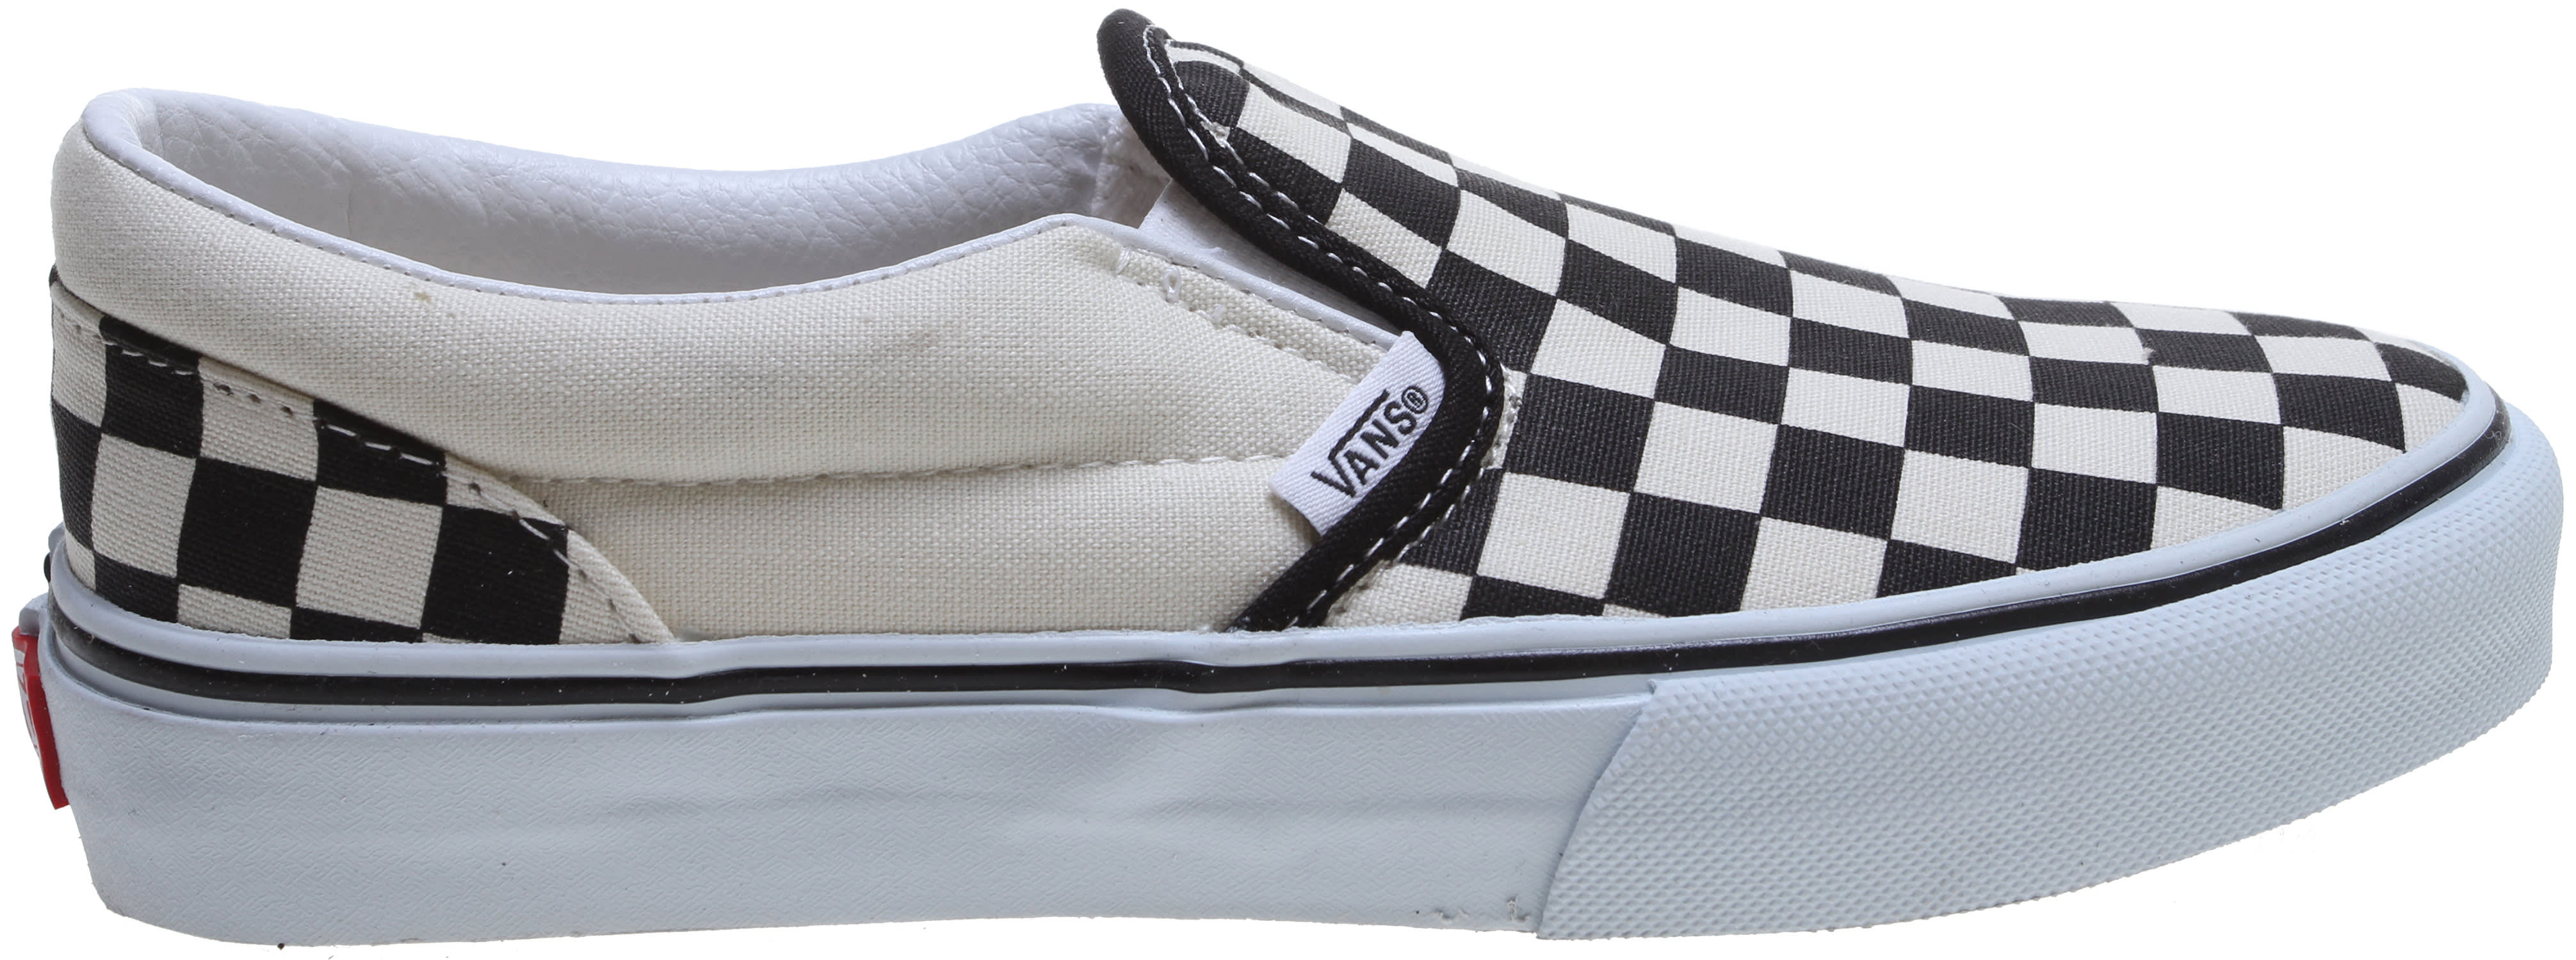 2ad378300c796c Vans Classic Slip-On (Checkerboard) Skate Shoes - thumbnail 1